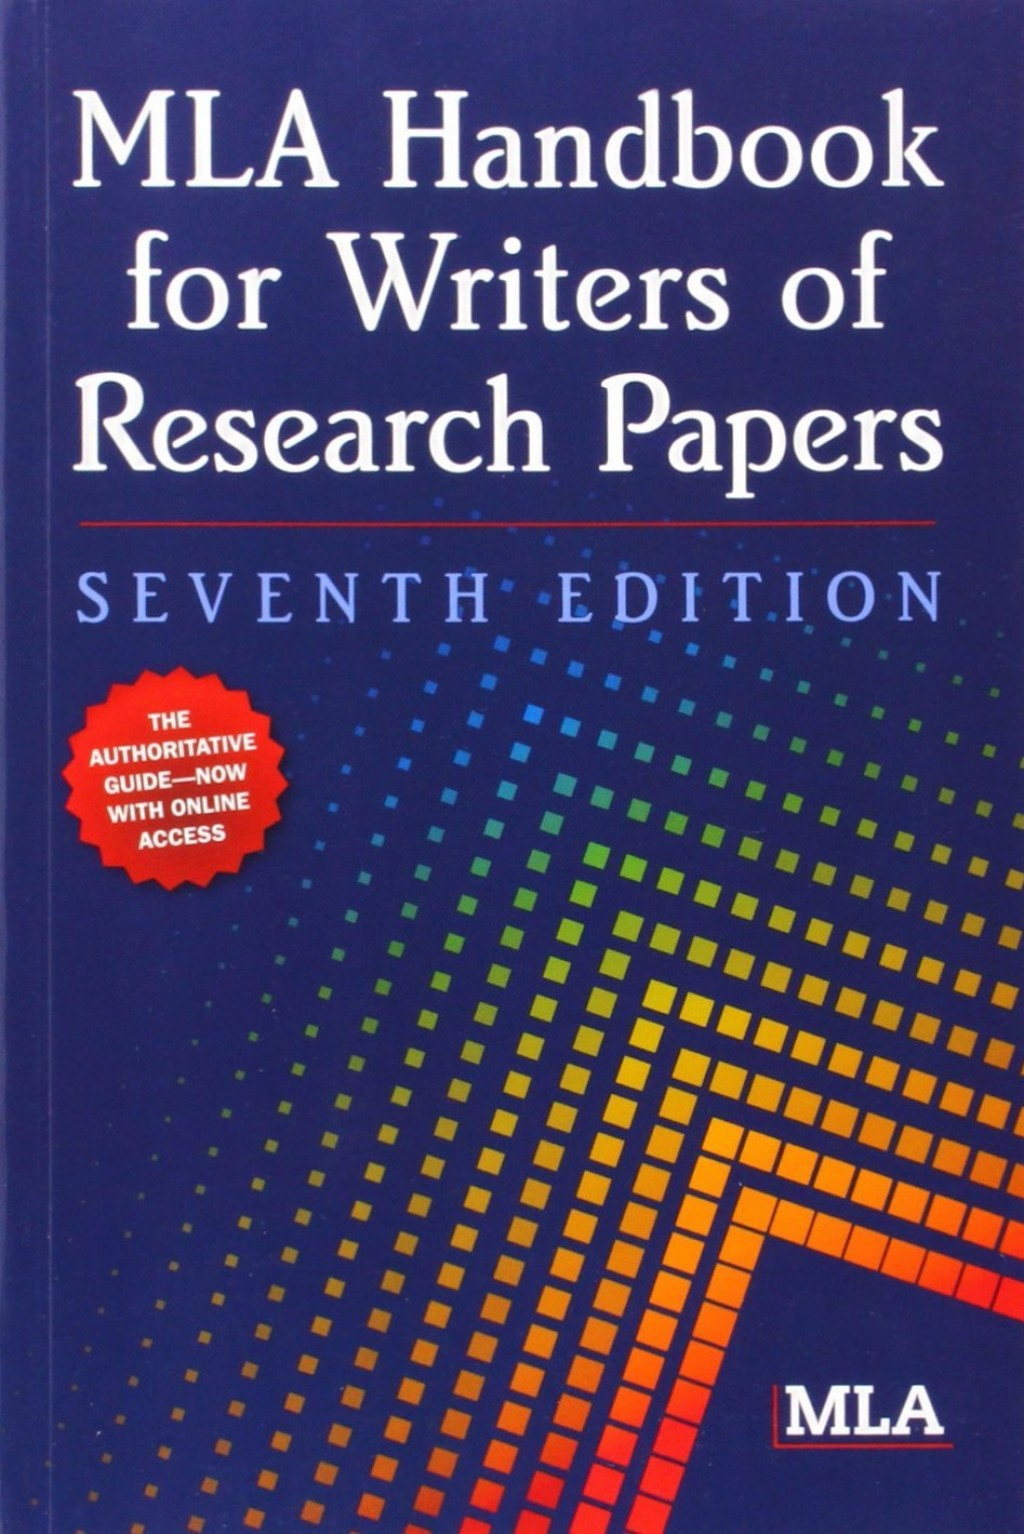 001 Mla Handbook For Writing Research Papers Paper Frightening Writers Of 8th Edition Pdf Free Download According To The Large